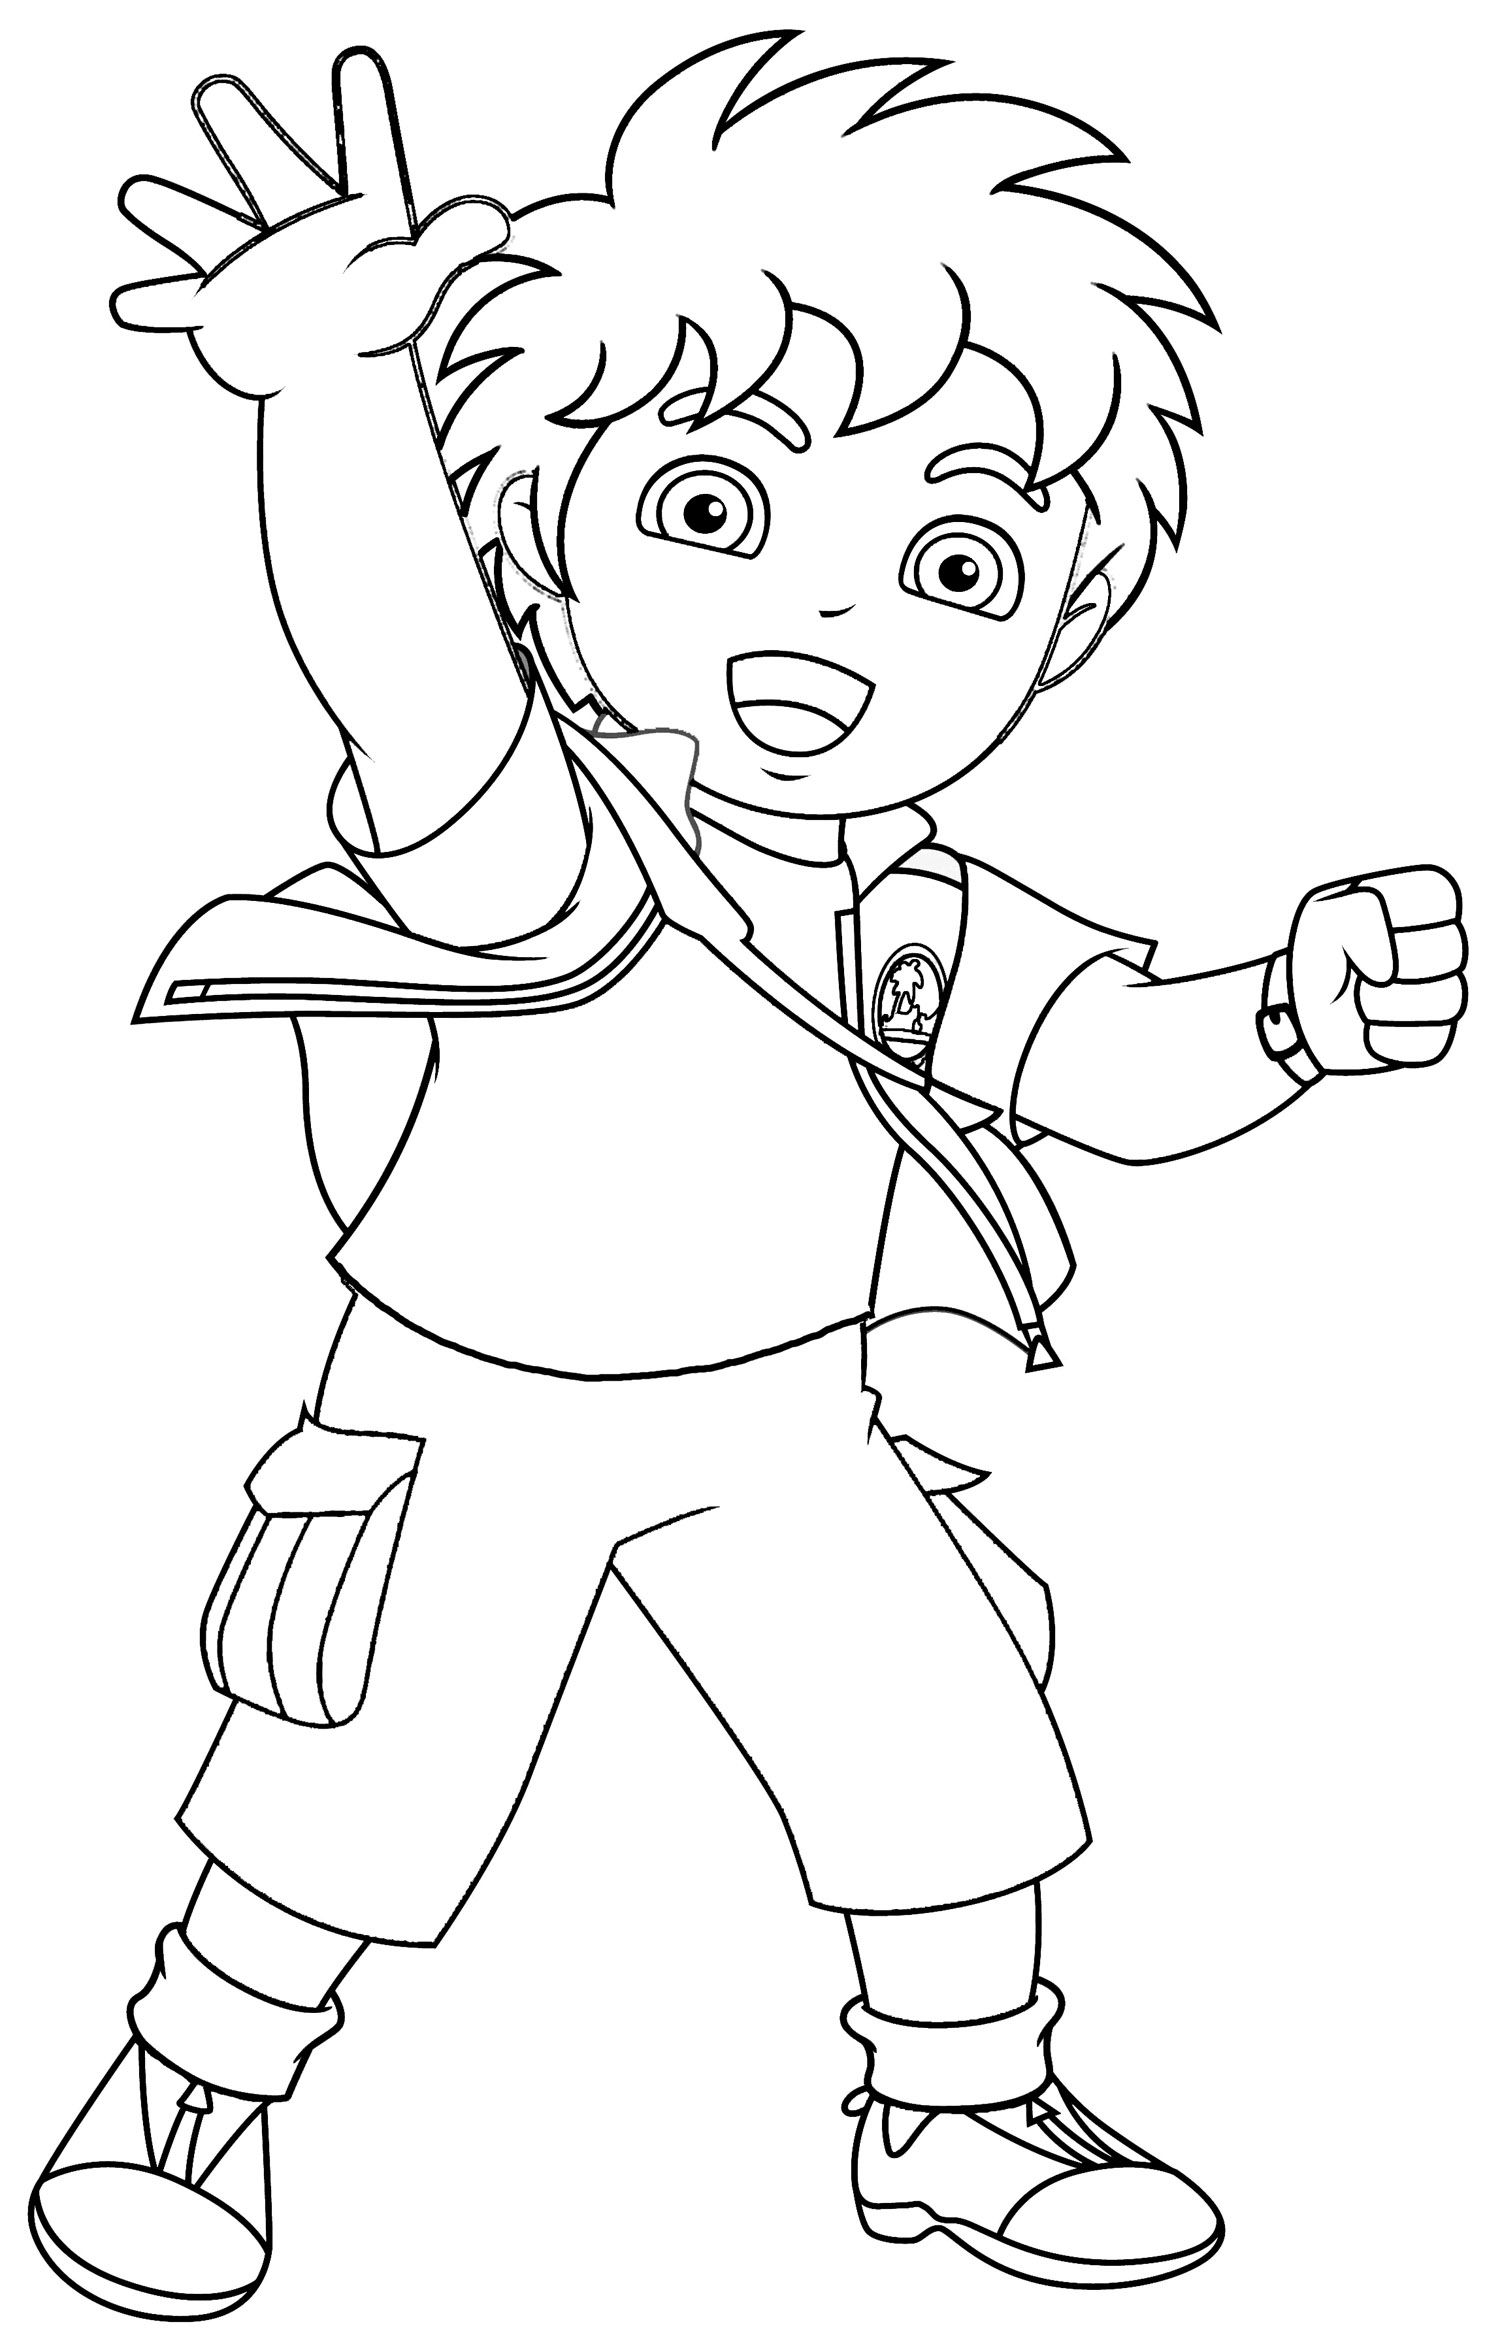 Free Printablego Coloring Pages For Kids